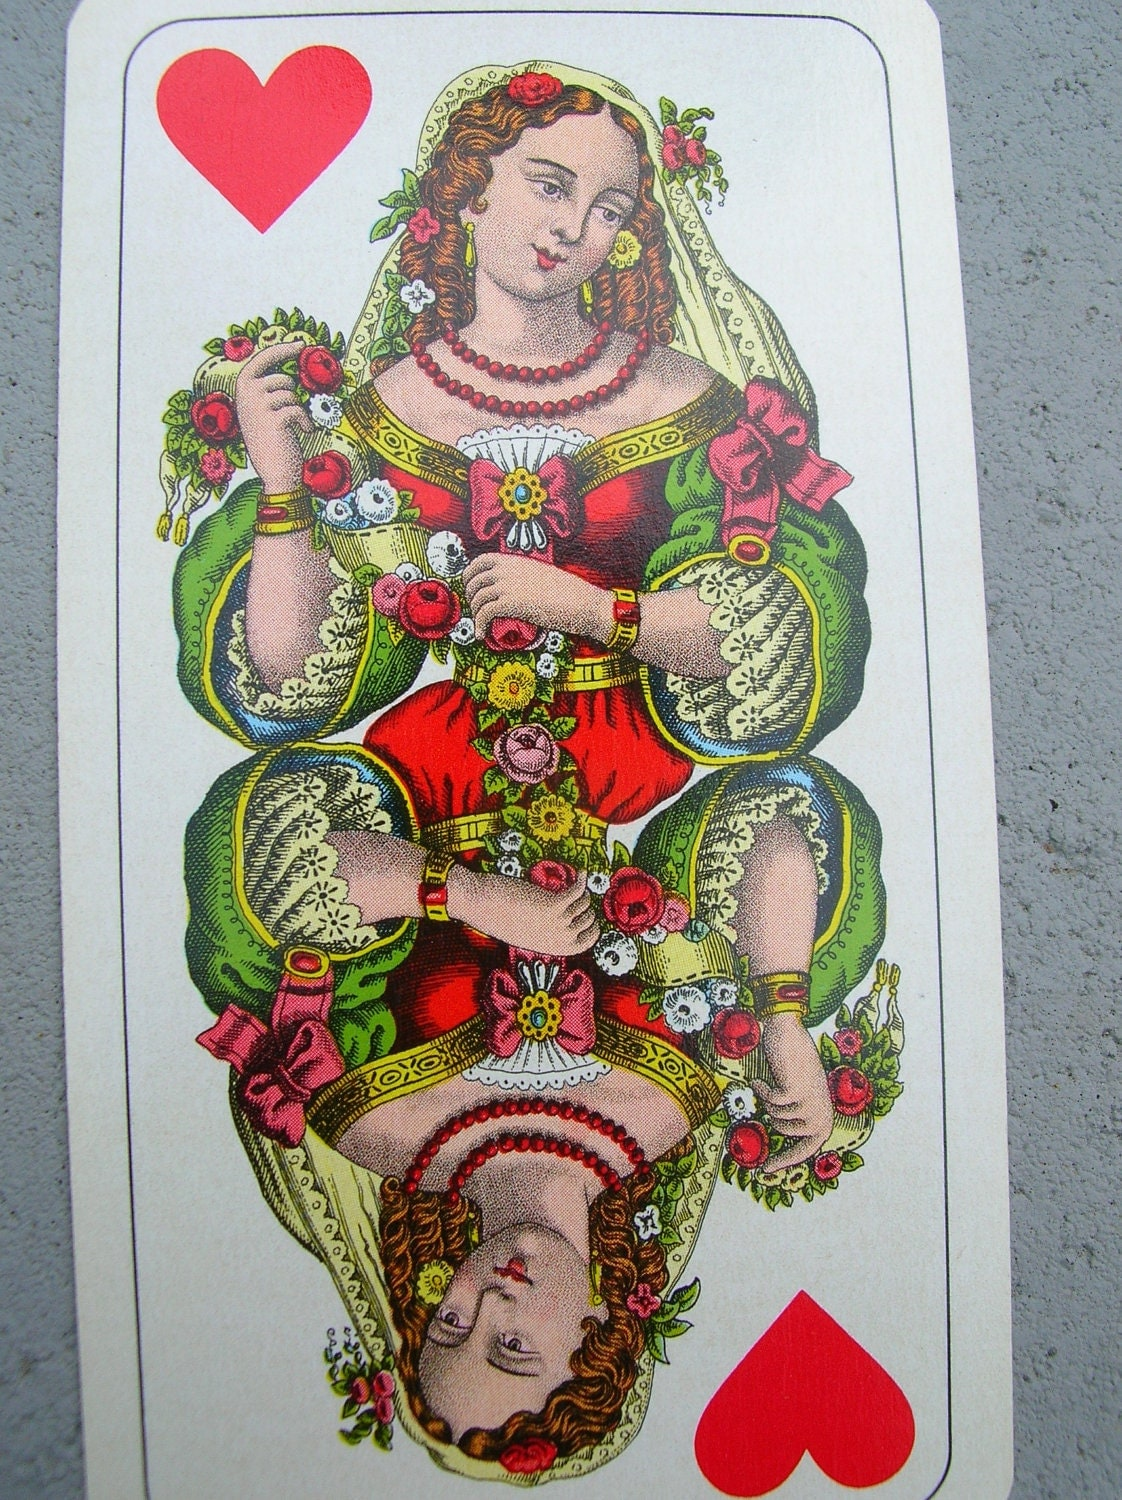 Antique Tarot Card The Fool: Vintage Austrian Tarot Cards Complete Setbeautiful Art Work